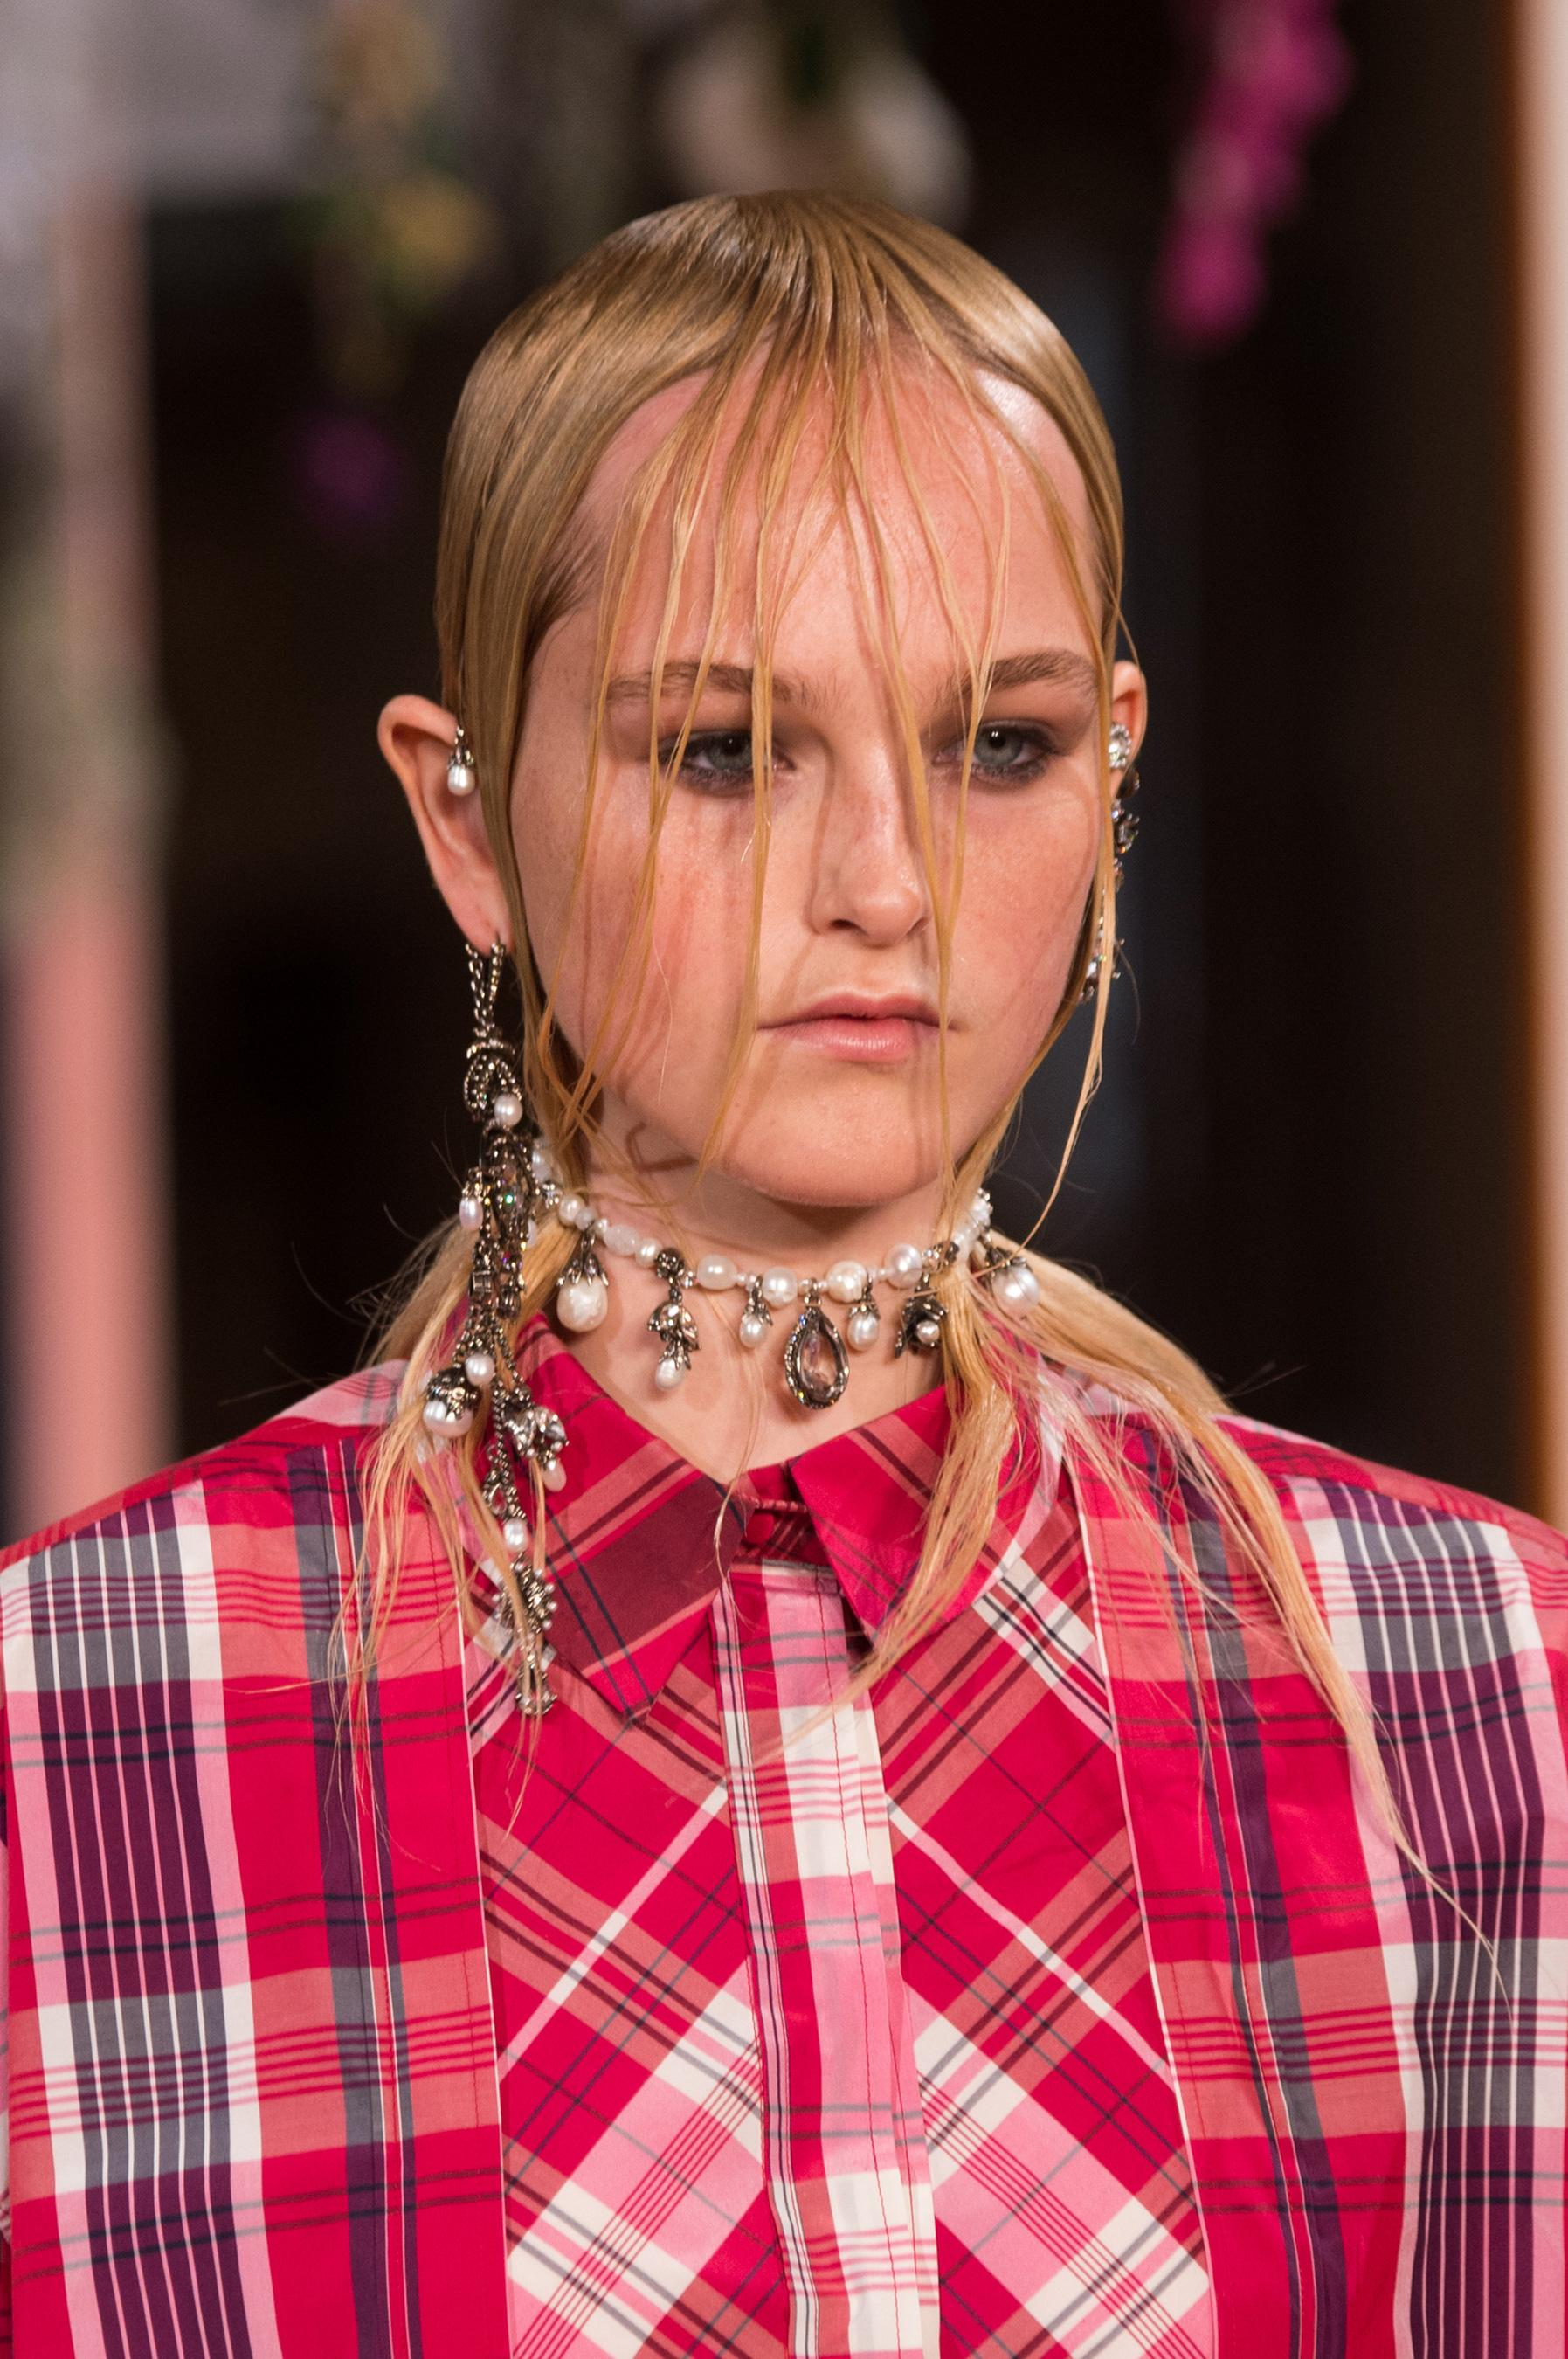 Alexander McQueen Fall 2018 Ready-to-Wear Collection - Vogue 35